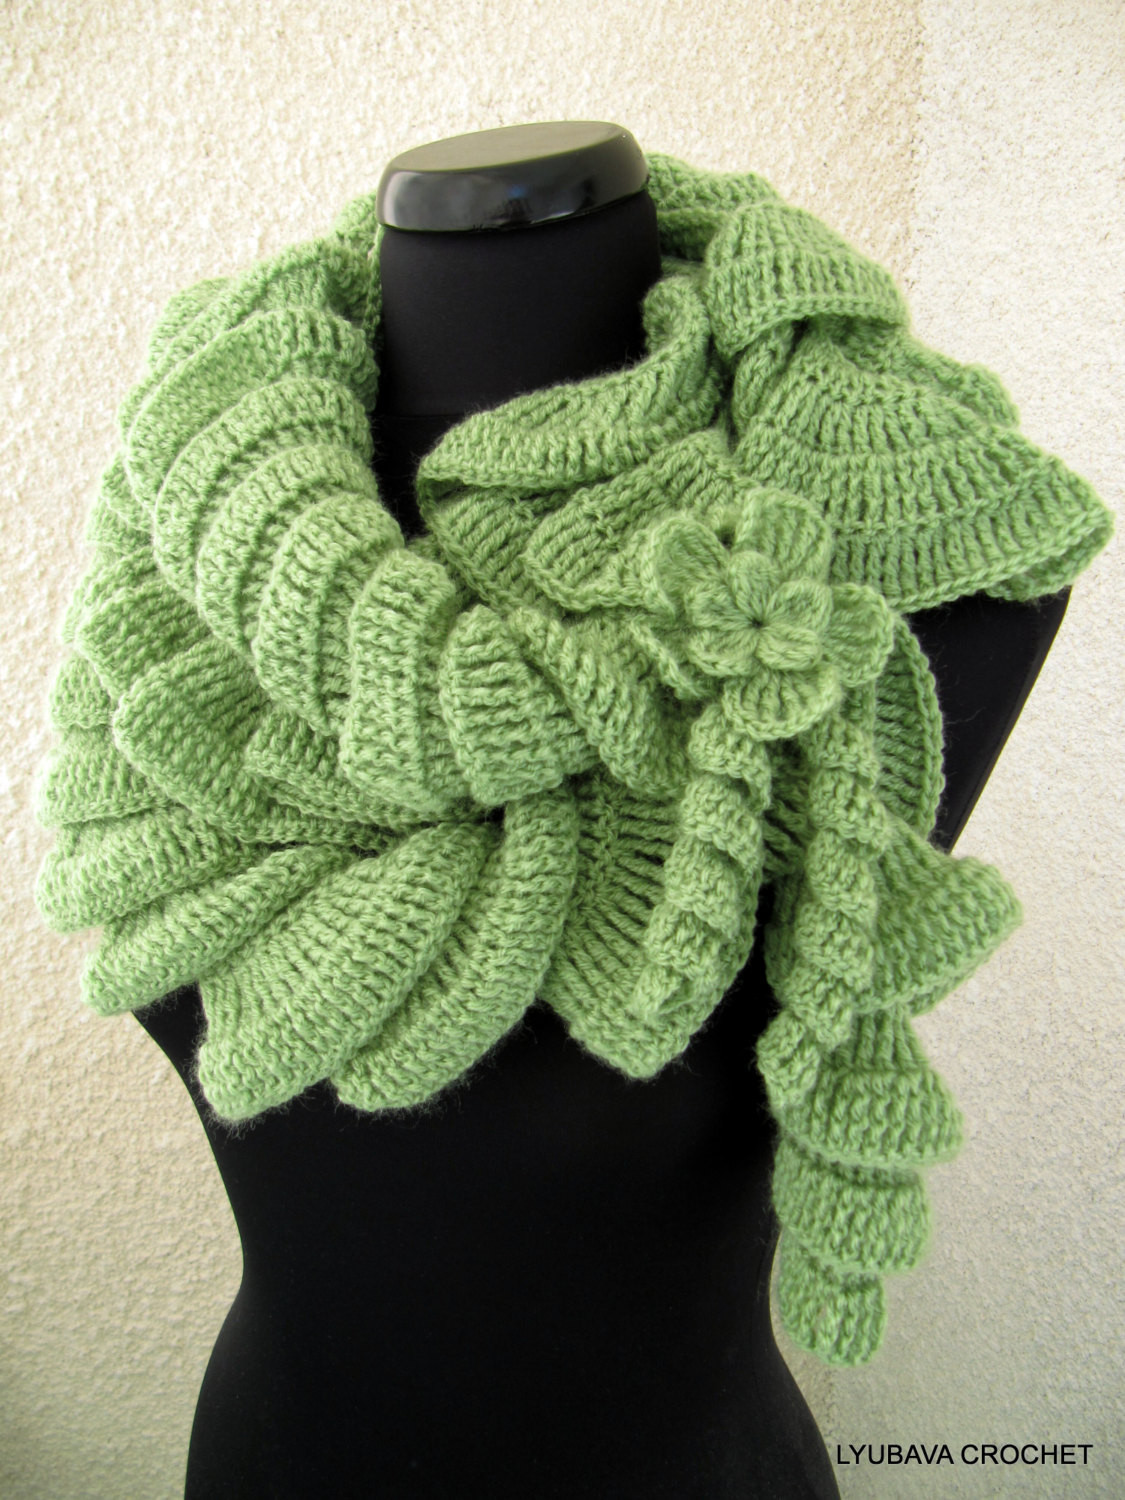 Unusual Crochet Patterns Elegant Unique Crochet Scarf Patterns Of Adorable 46 Pictures Unusual Crochet Patterns